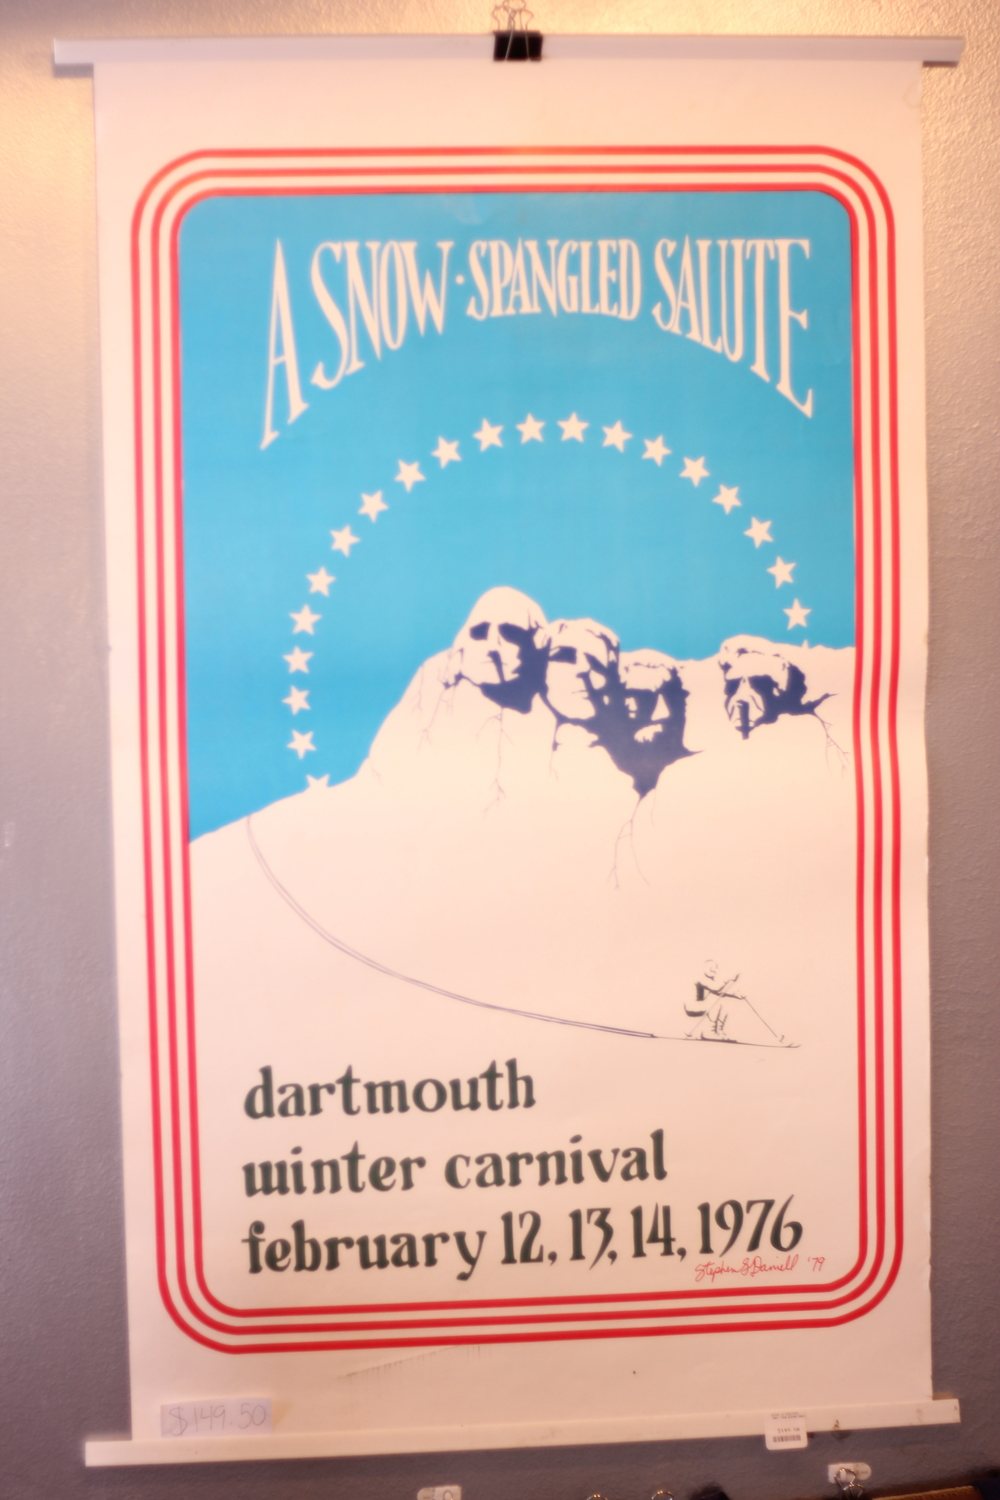 Dartmouth Winter Carnival 1976